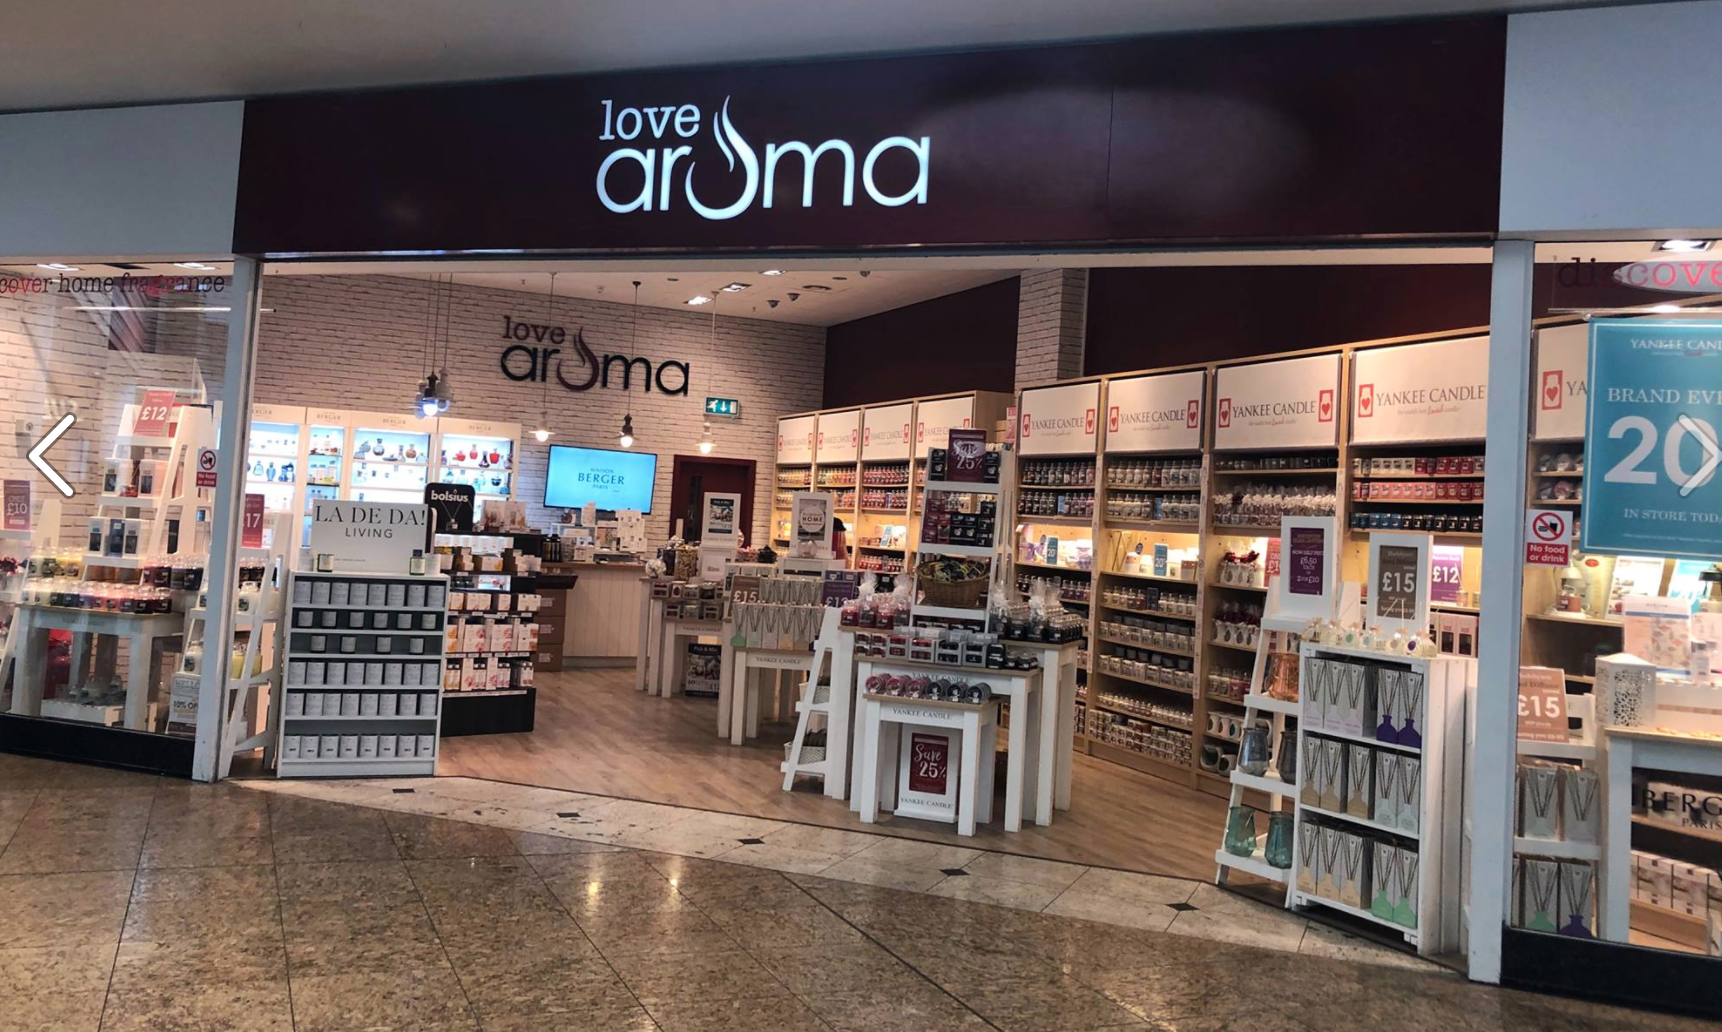 Above: As well as its card shops, the Penmark group also includes four Love Aroma candle and home fragrance shops.